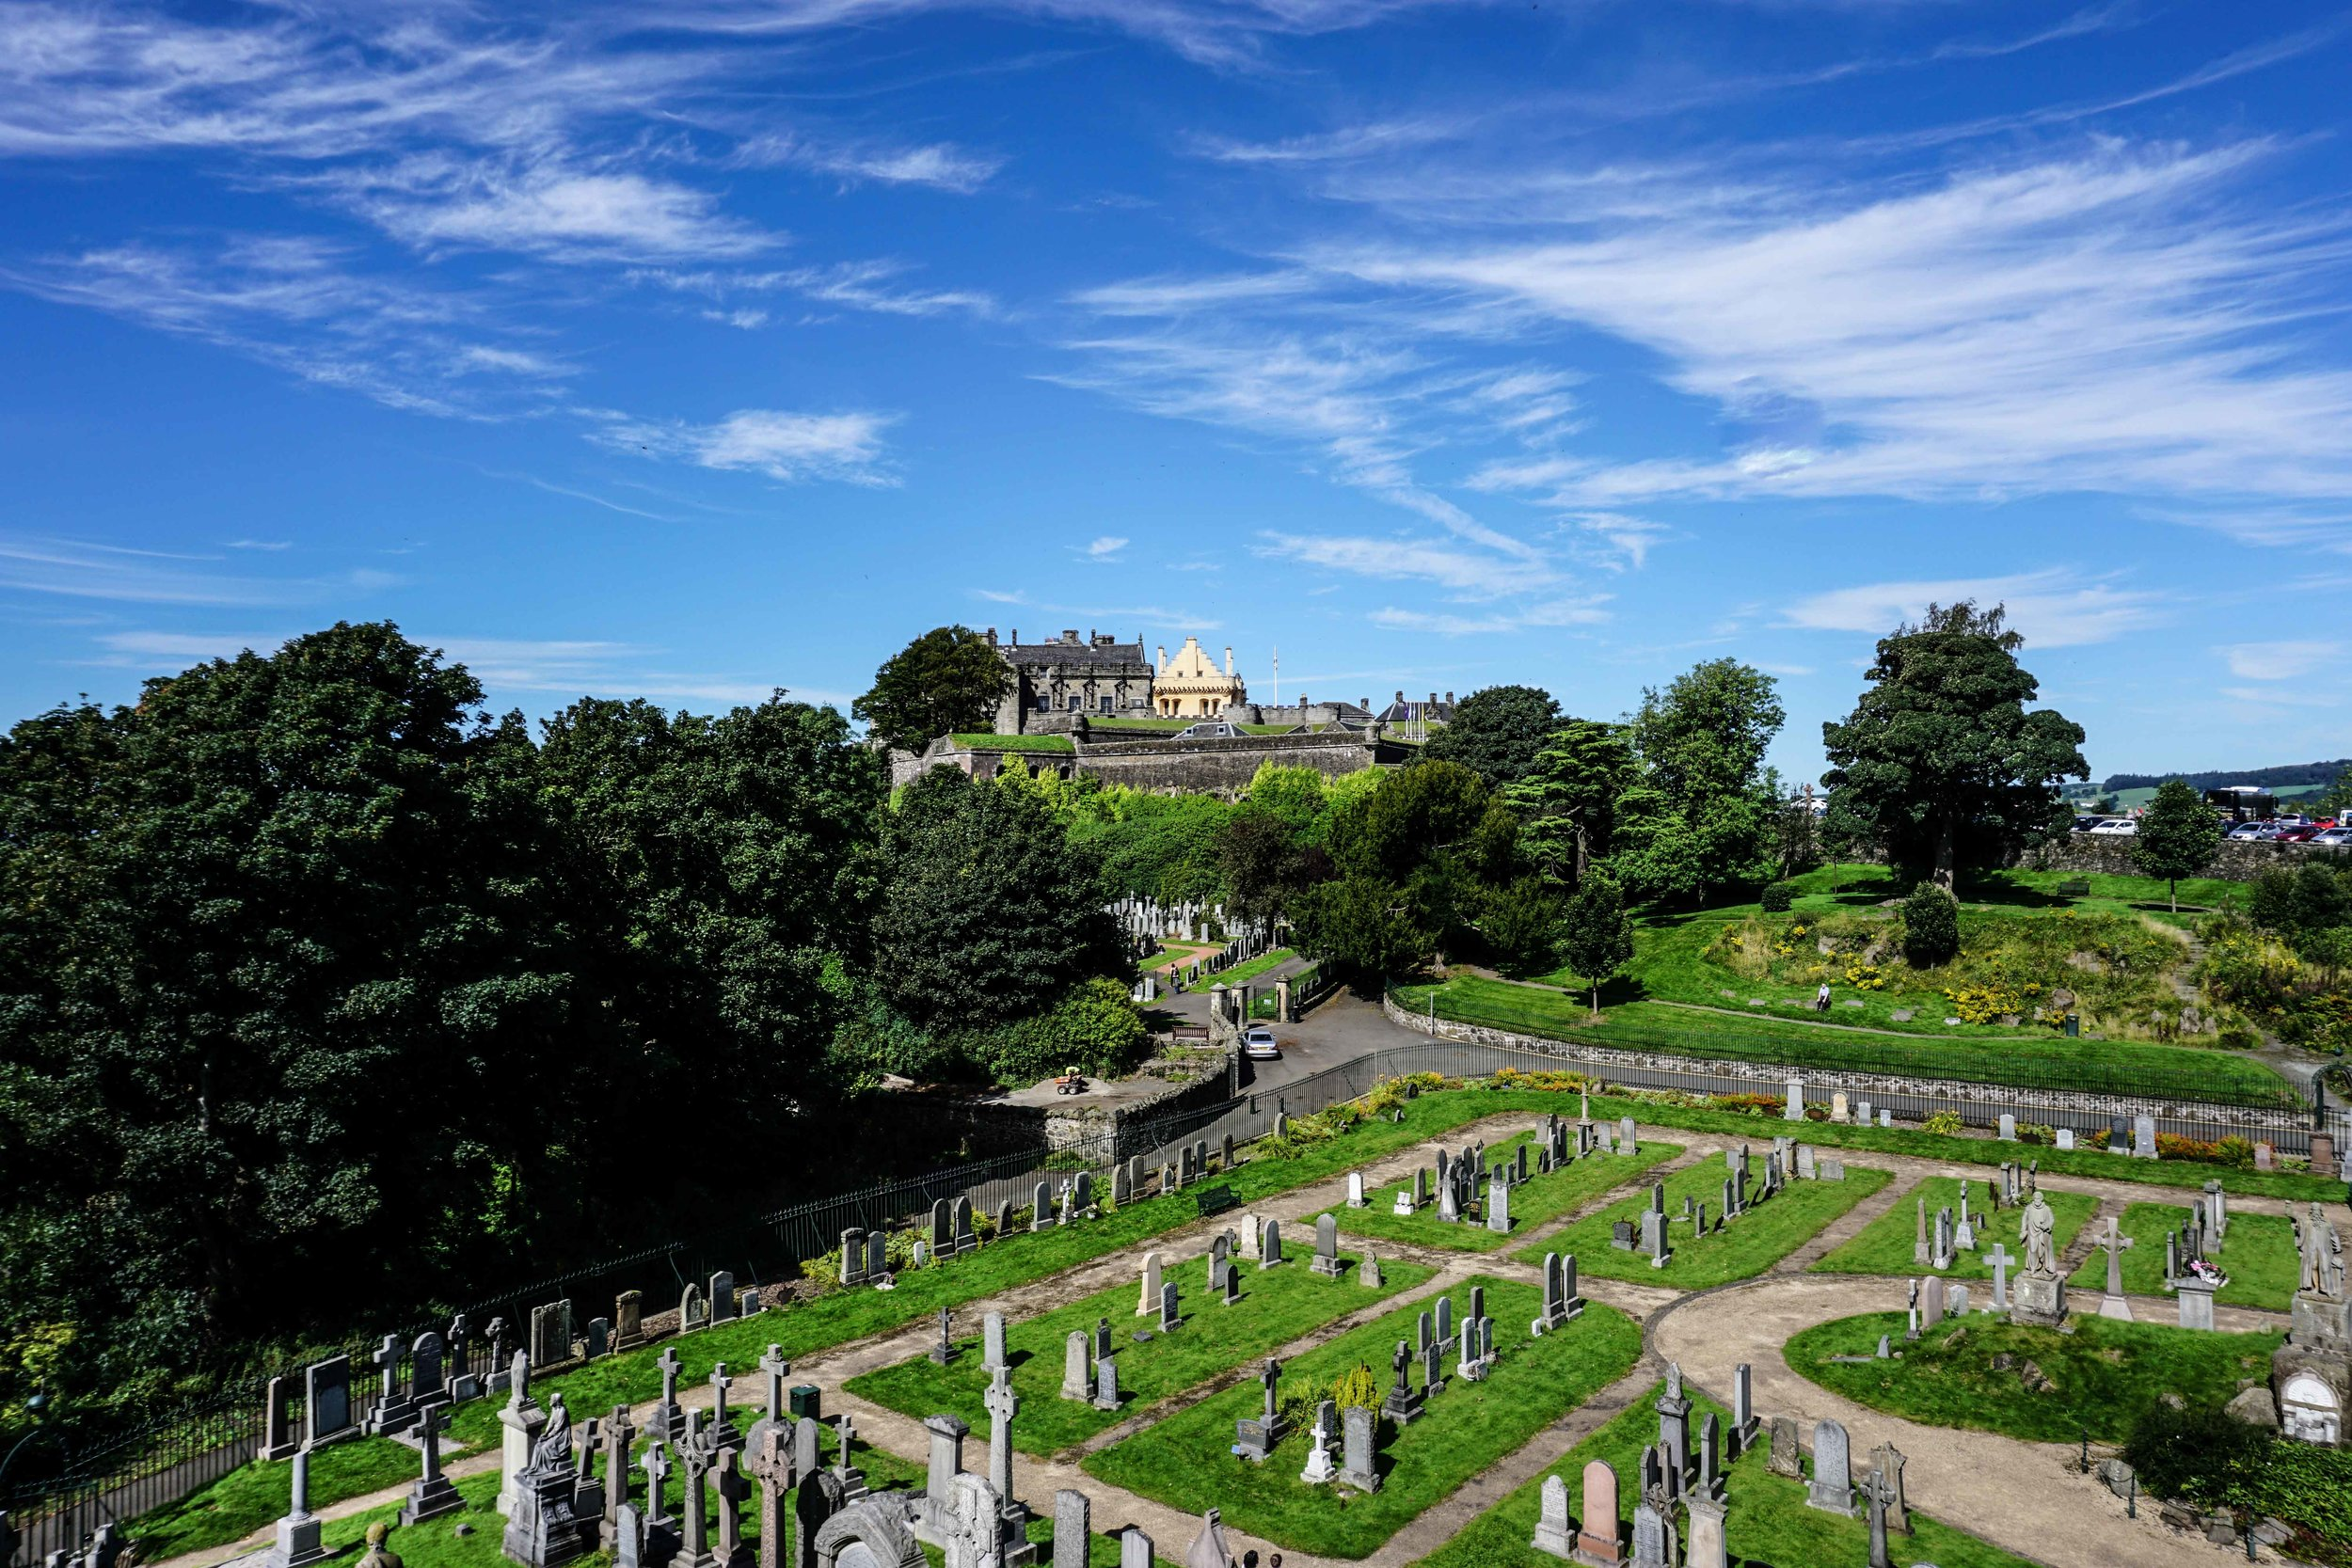 Stirling Castle (now discovering we spent a lot of time in cemeteries...)